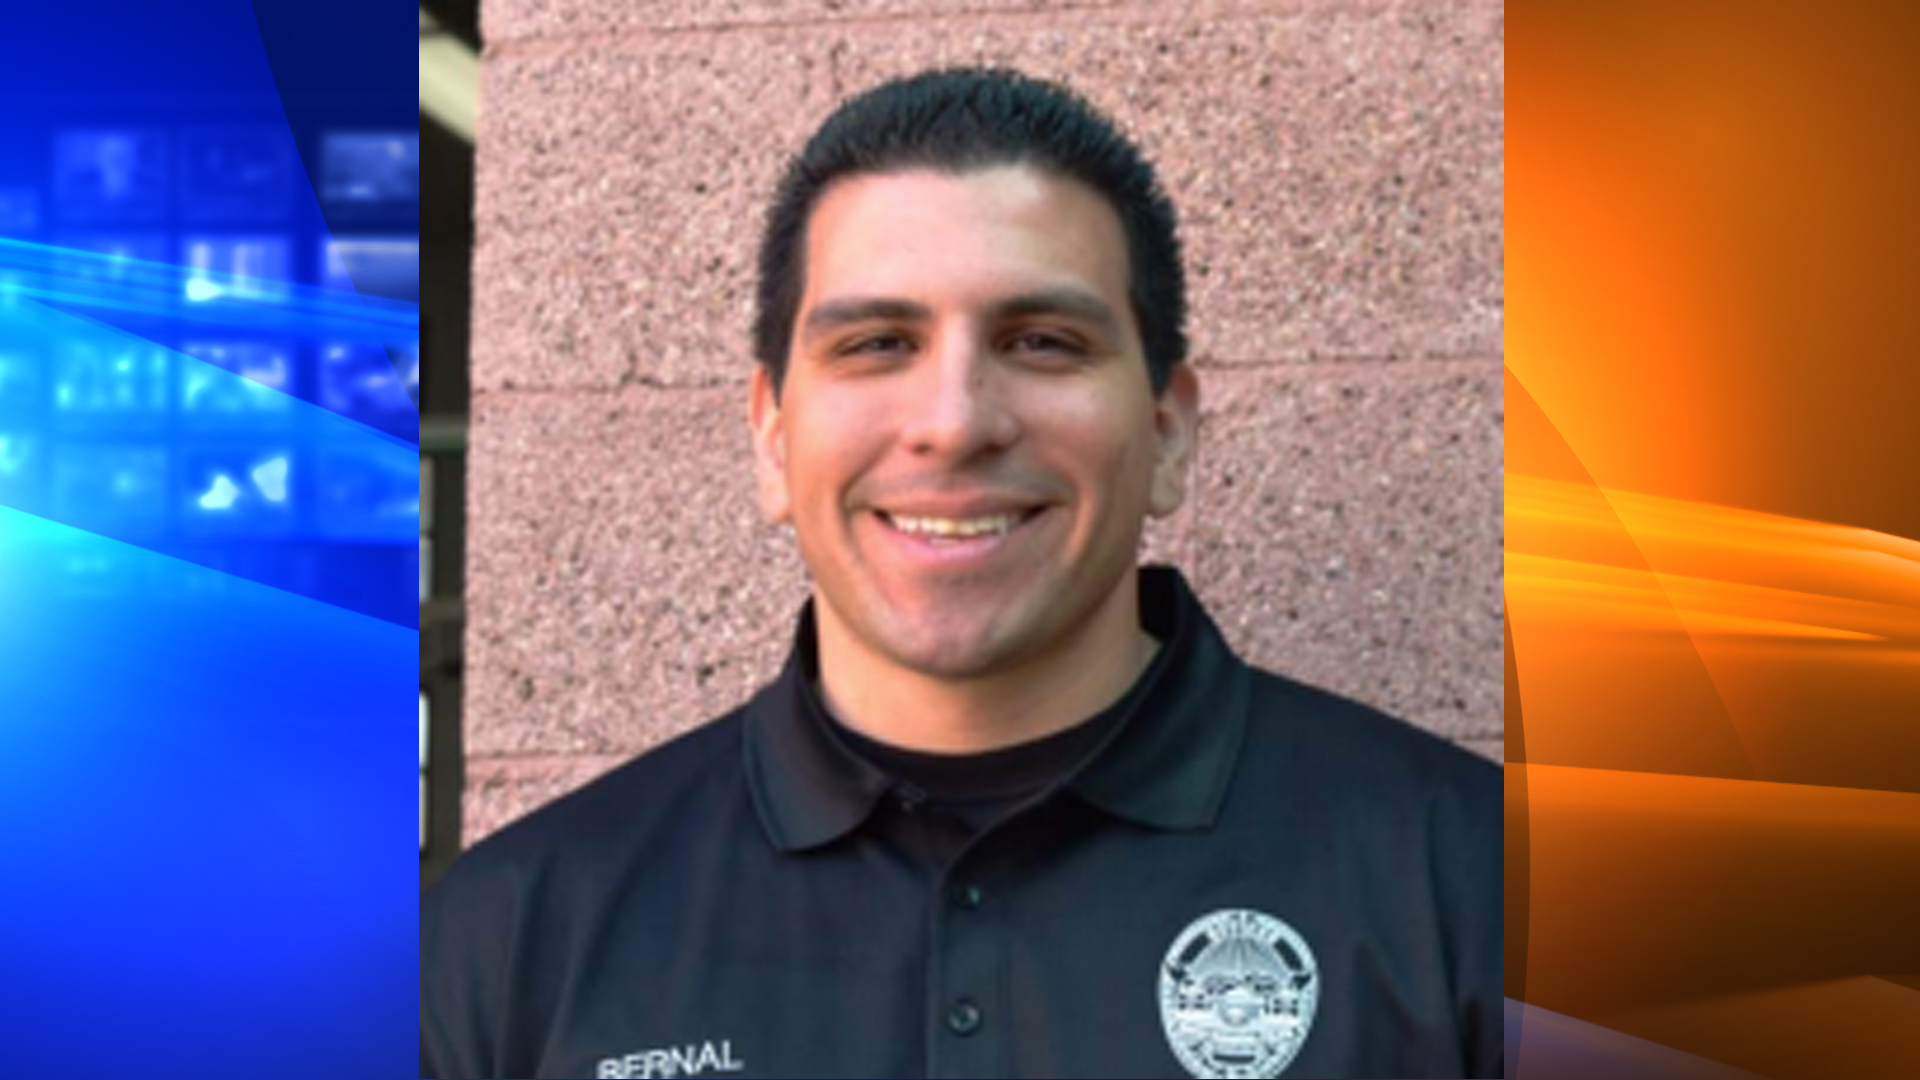 Former Cpl. Ryan Bernal is seen in from the South Pasadena Police Department's annual report in 2014.